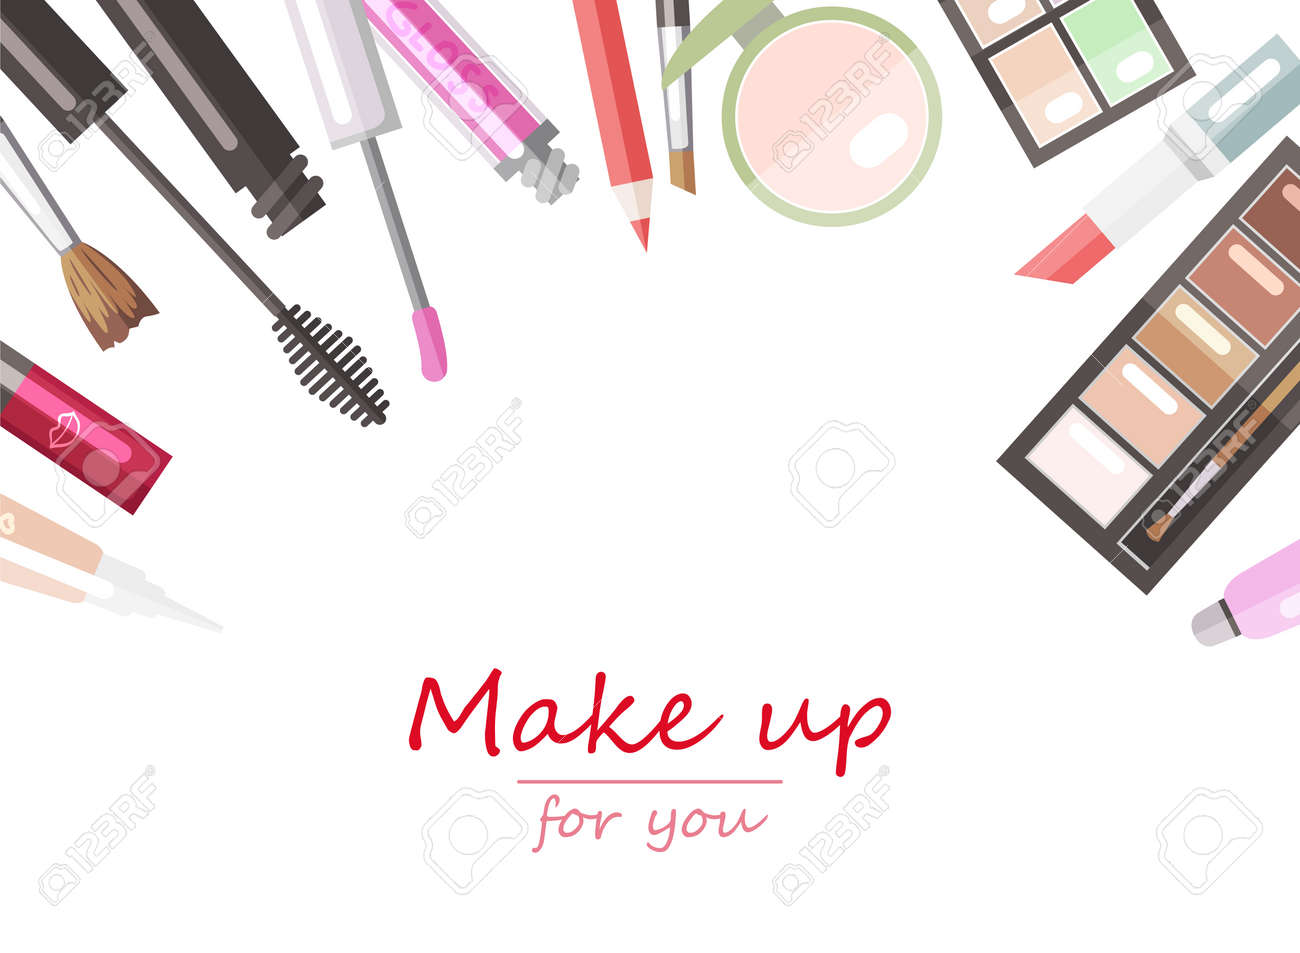 Makeup Beauty Products Flat Vector Background Template Royalty Free Cliparts Vectors And Stock Illustration Image 64839286